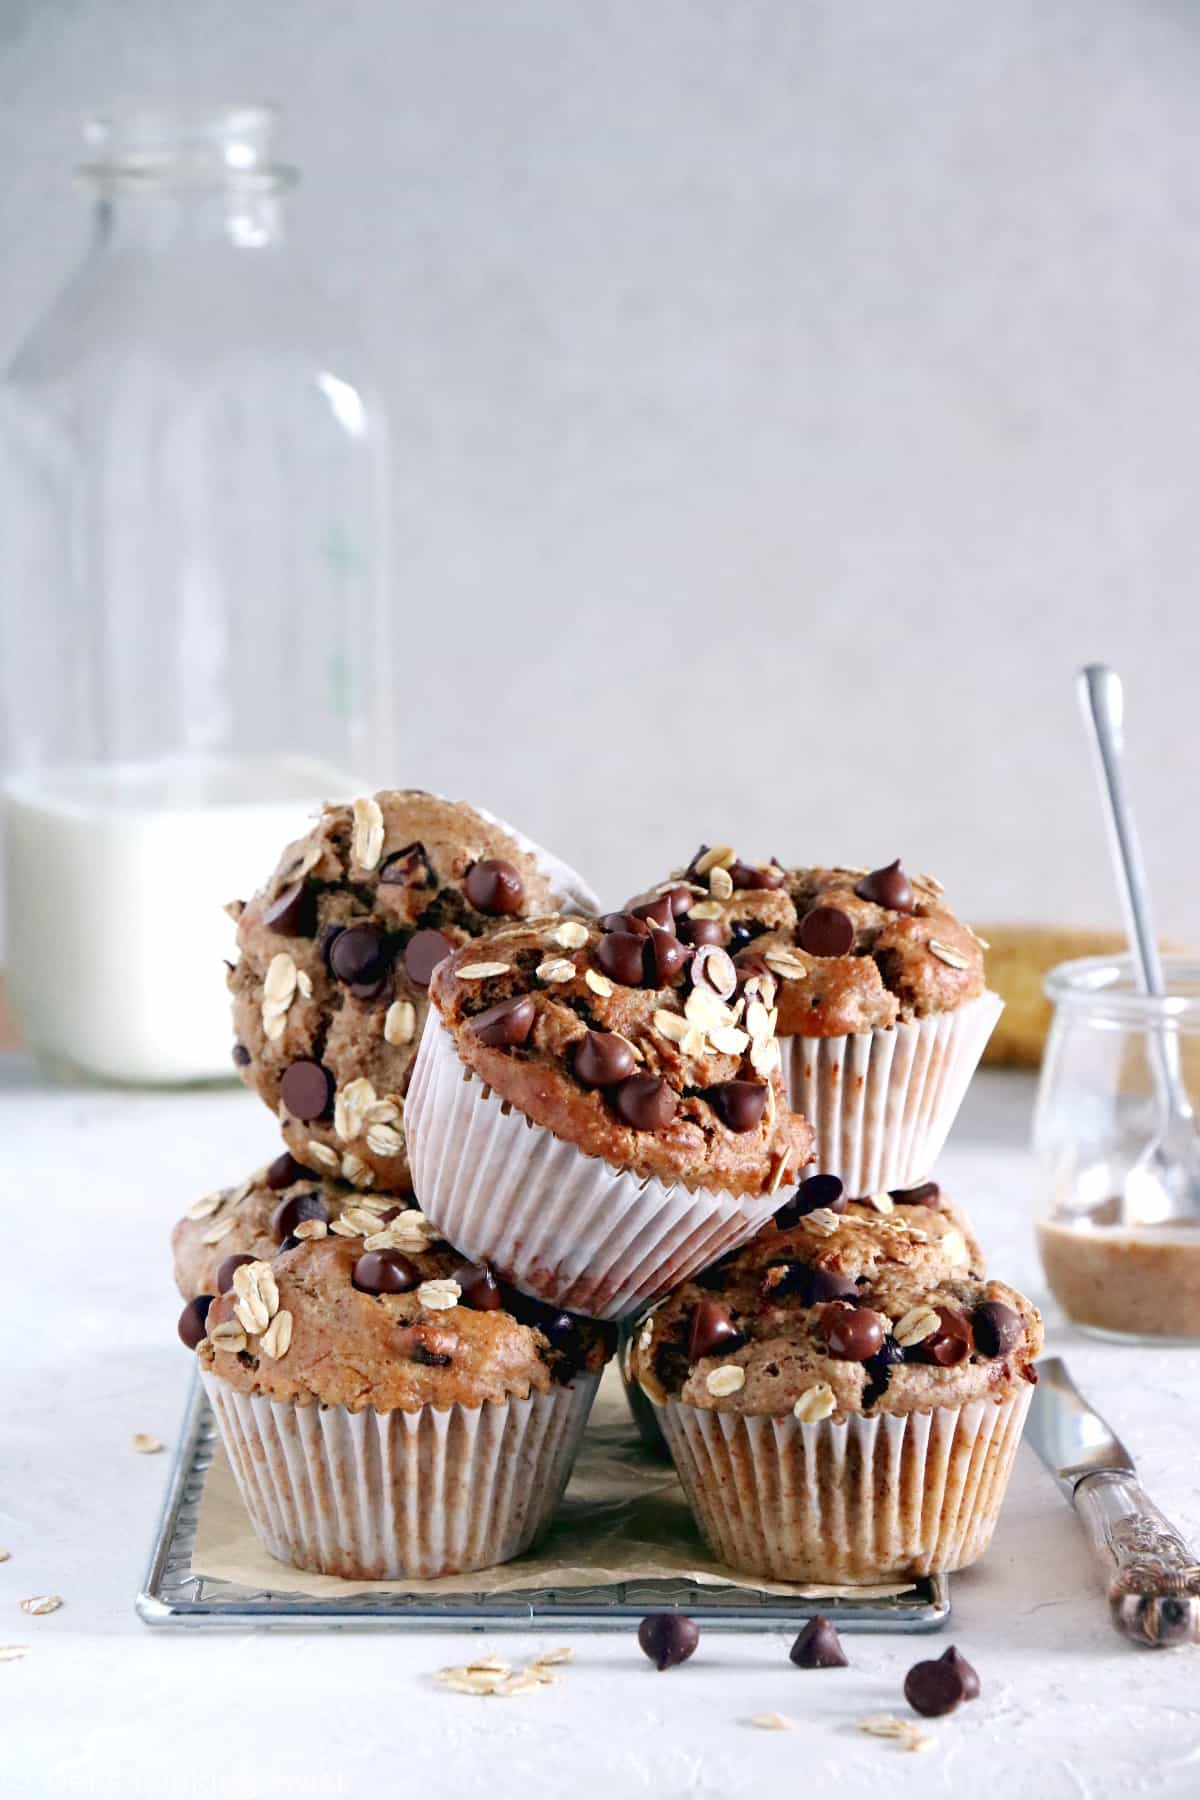 These sugar-free almond butter banana muffins are on the healthy side. They are made with nutritious, wholesome ingredients and packed with fiber.